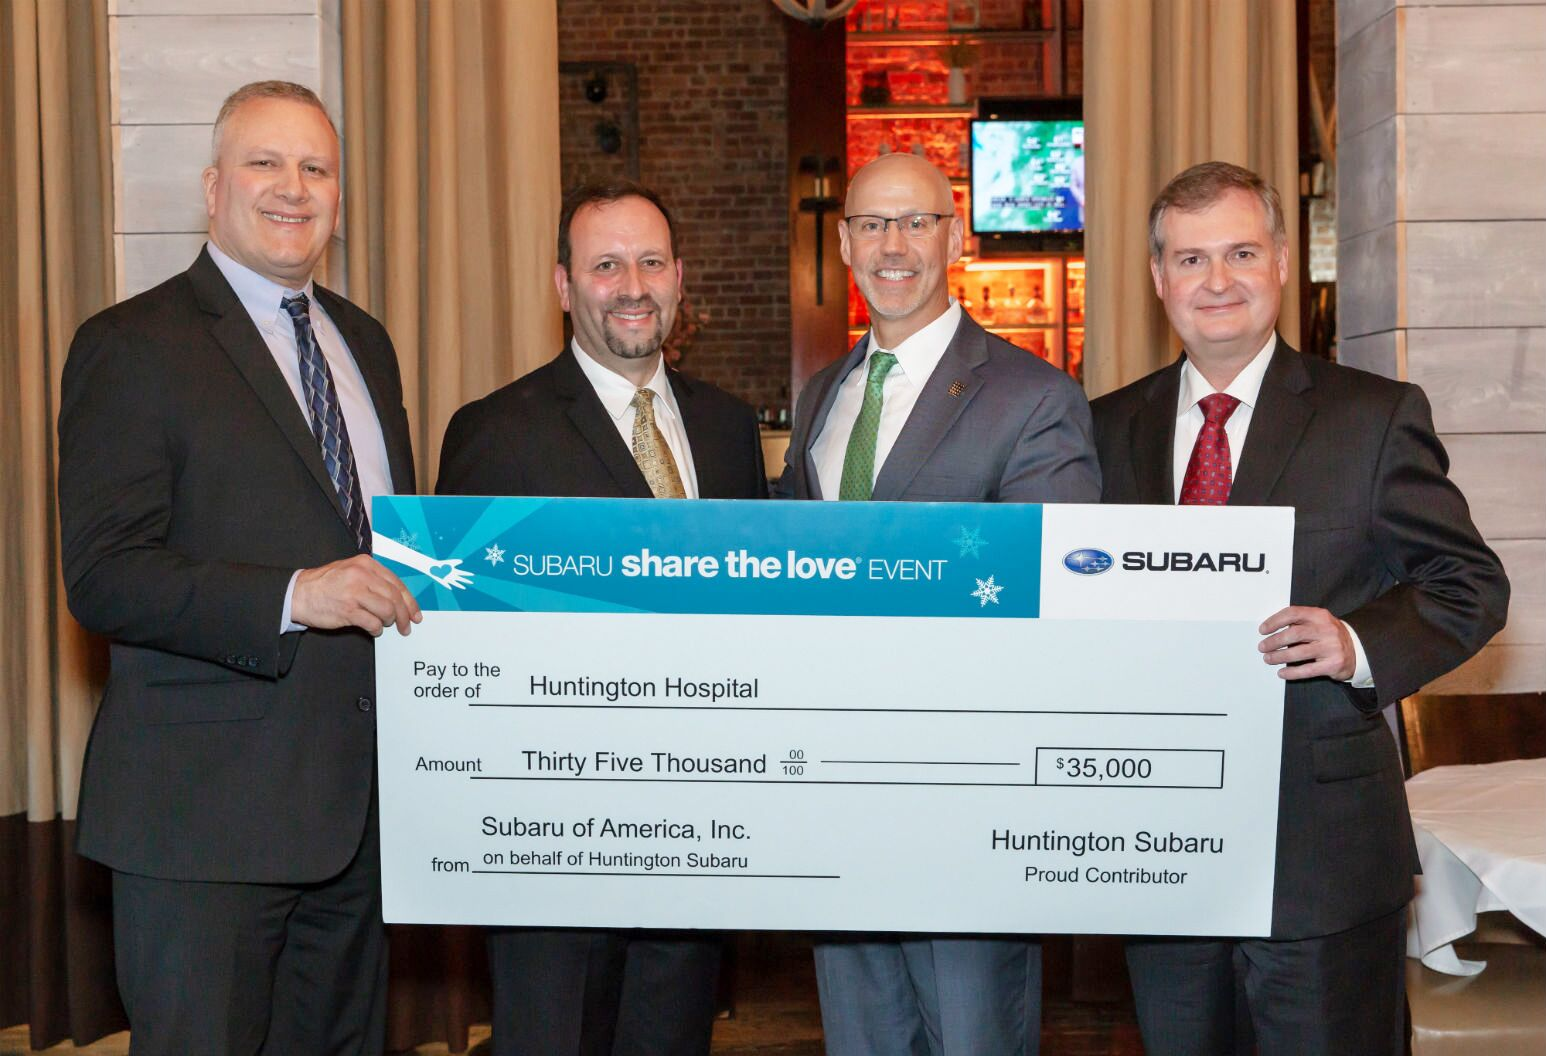 Huntington Subaru representatives present Huntington Hospital's Dr. Nick Fitterman and Dr. Robert Kerr with a $35,000 donation.